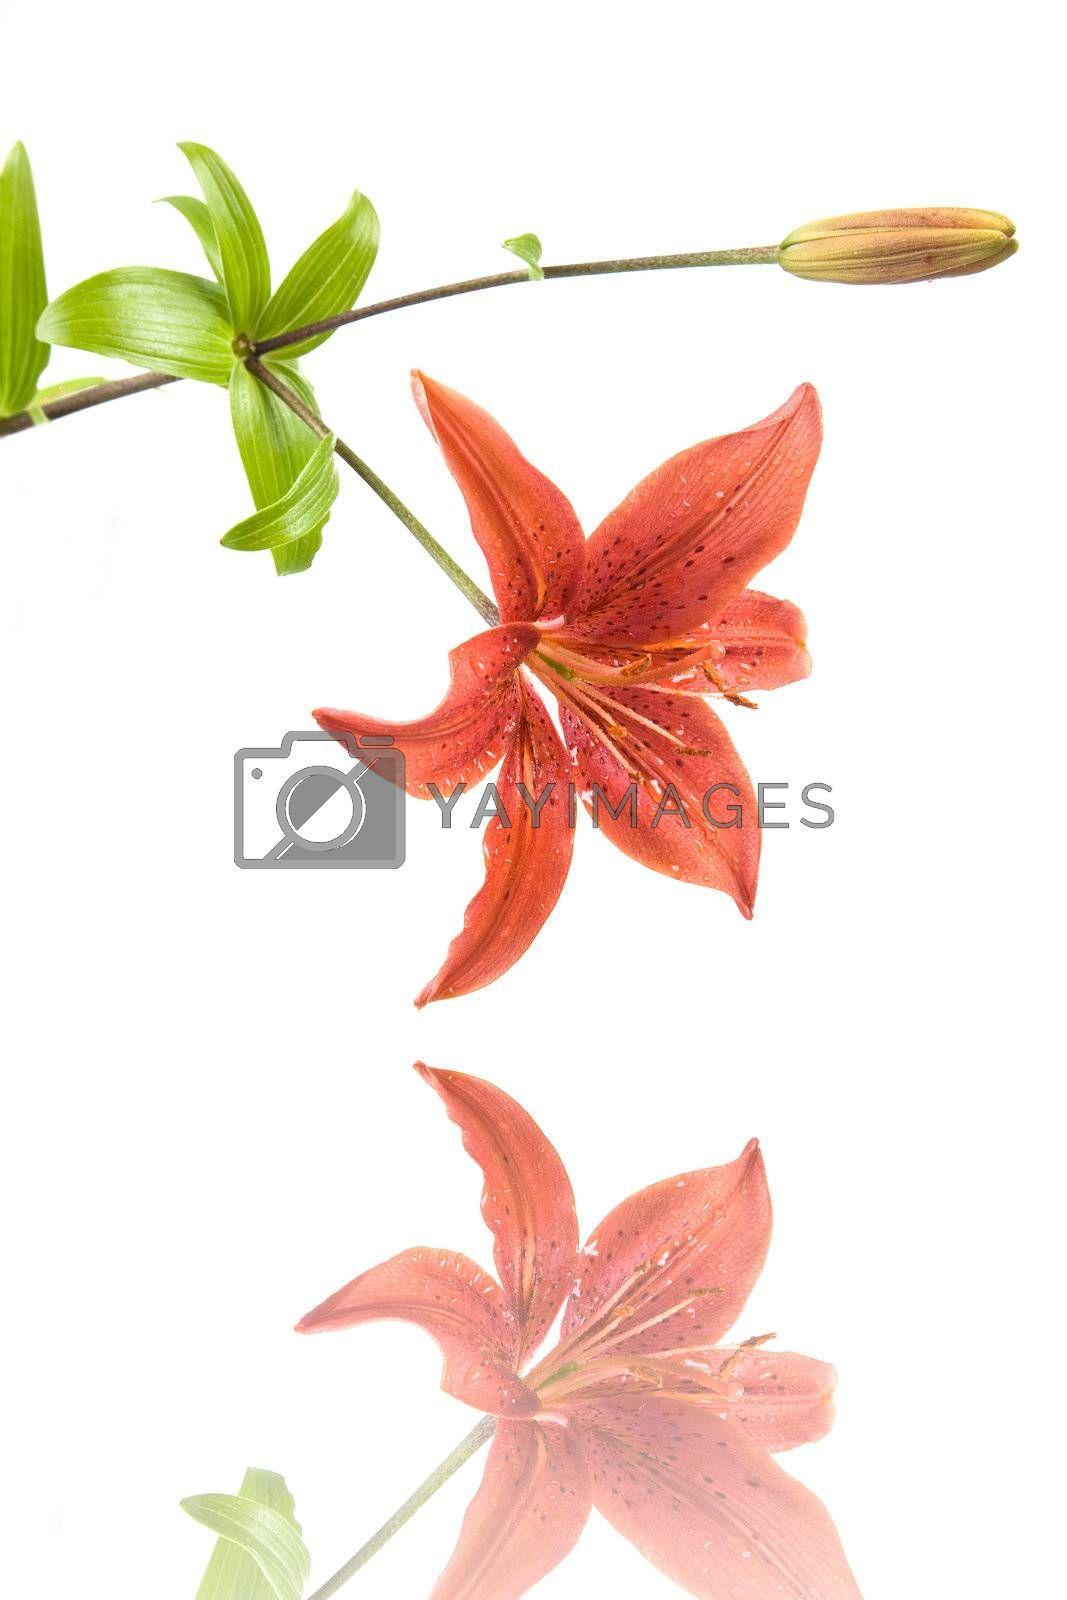 Red Lilly with reflection. Isolated on white background. Studio Shot.